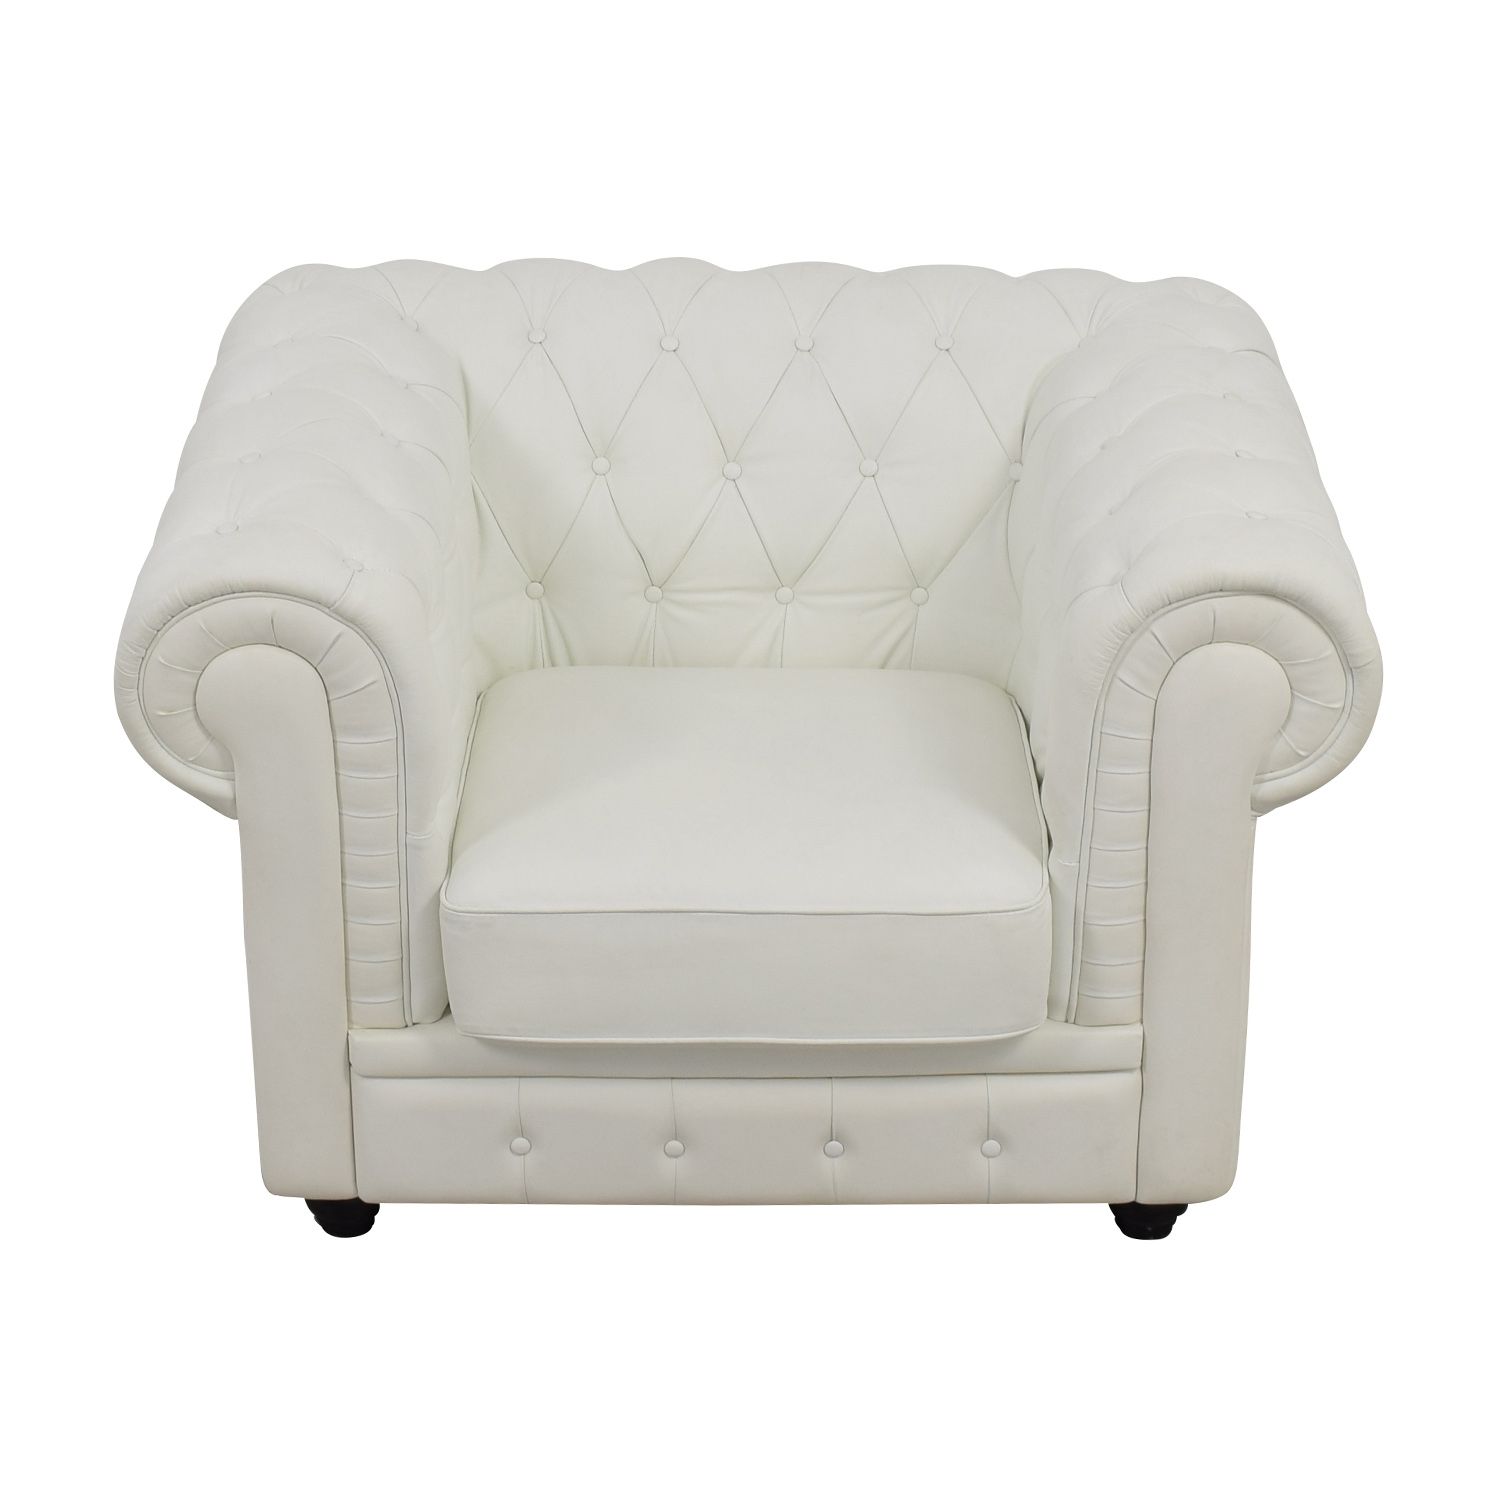 White Tufted Accent Chair Shop Chesterfield Leather Used Furniture On Sale